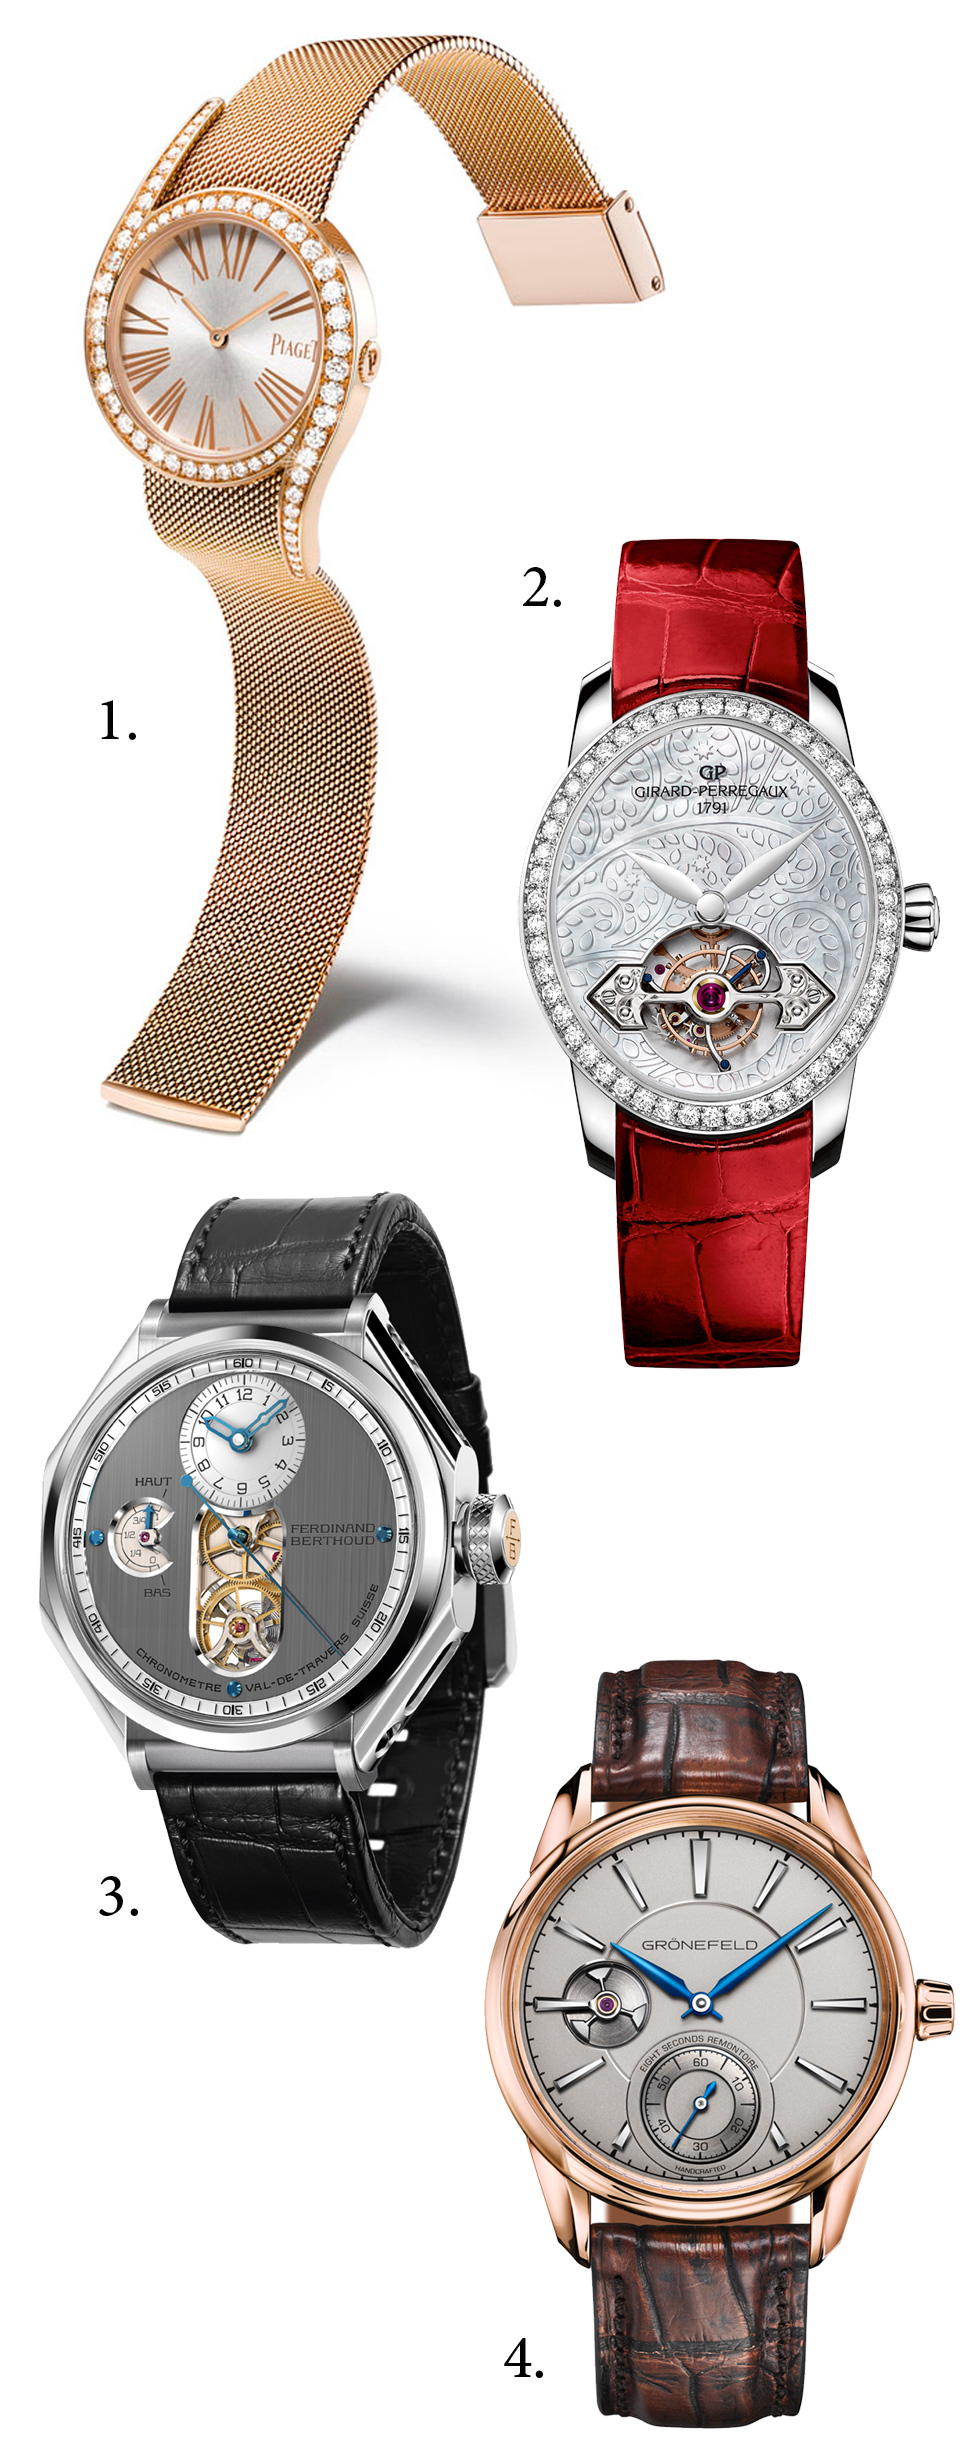 "1. Ladies' Watch Prize: Piaget, Limelight Gala Milanese Bracelet; 2. Ladies' High-Mech Prize: Girard-Perregaux, Cat's Eye Tourbillon with Gold Bridge; 3. ""Aiguille d'Or"" Grand Prix: Ferdinand Berthoud, Chronomètre Ferdinand Berthoud FB 1; 4.Men's Watch Prize: Grönefeld, 1941 Remontoire"